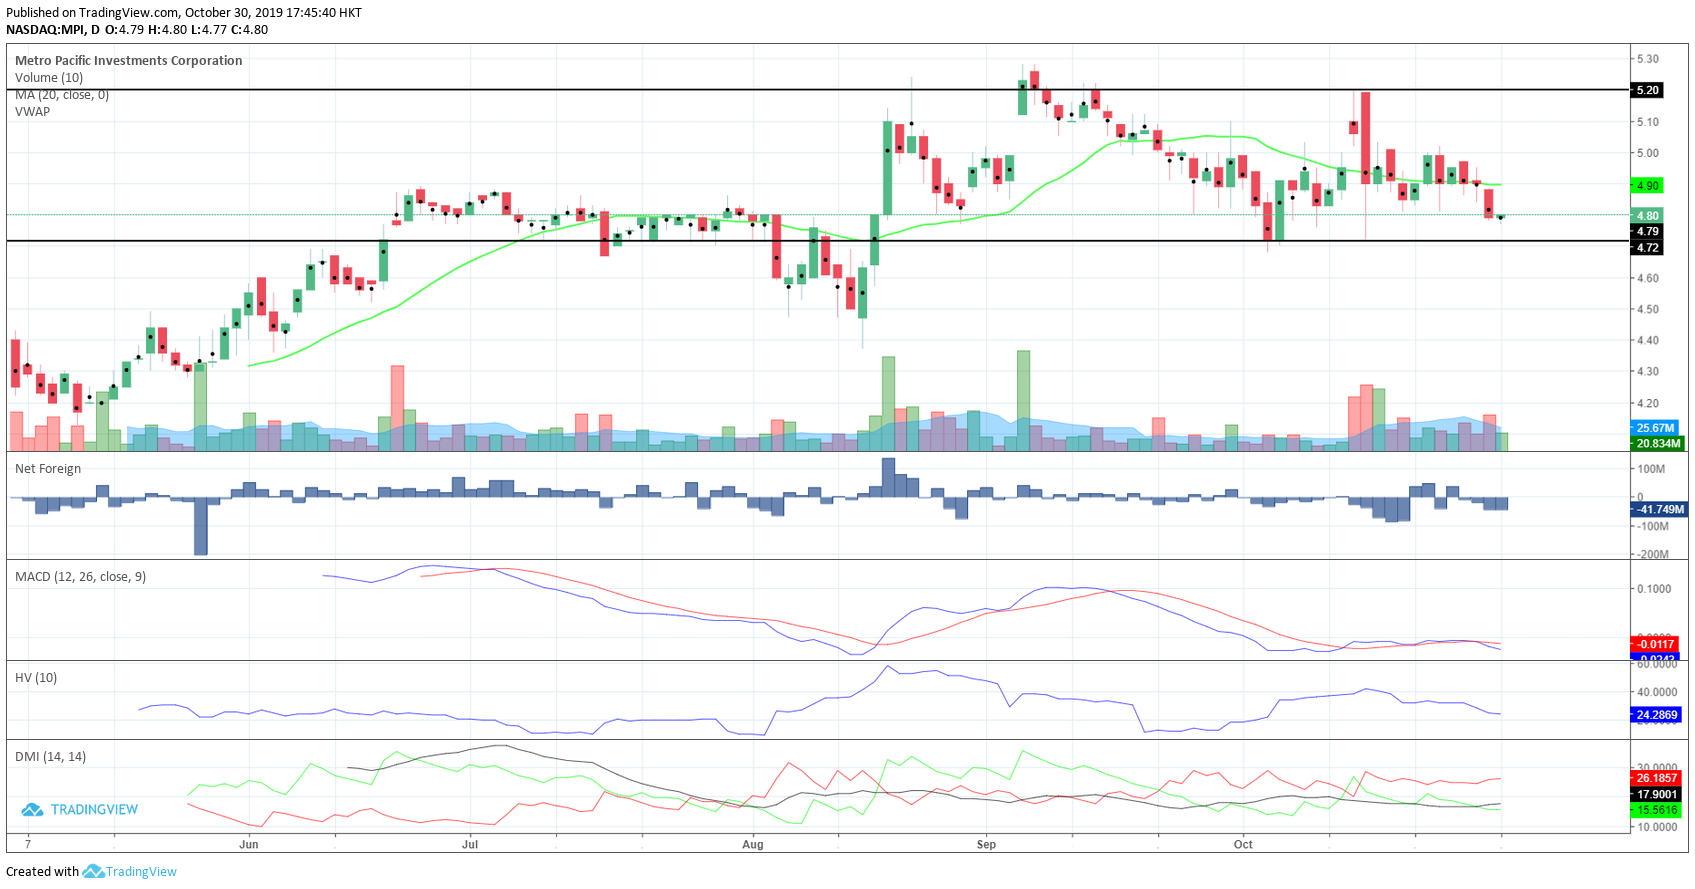 Metro Pacific Investments Corporation (MPI) - Daily Chart EOD - 10.30.2019